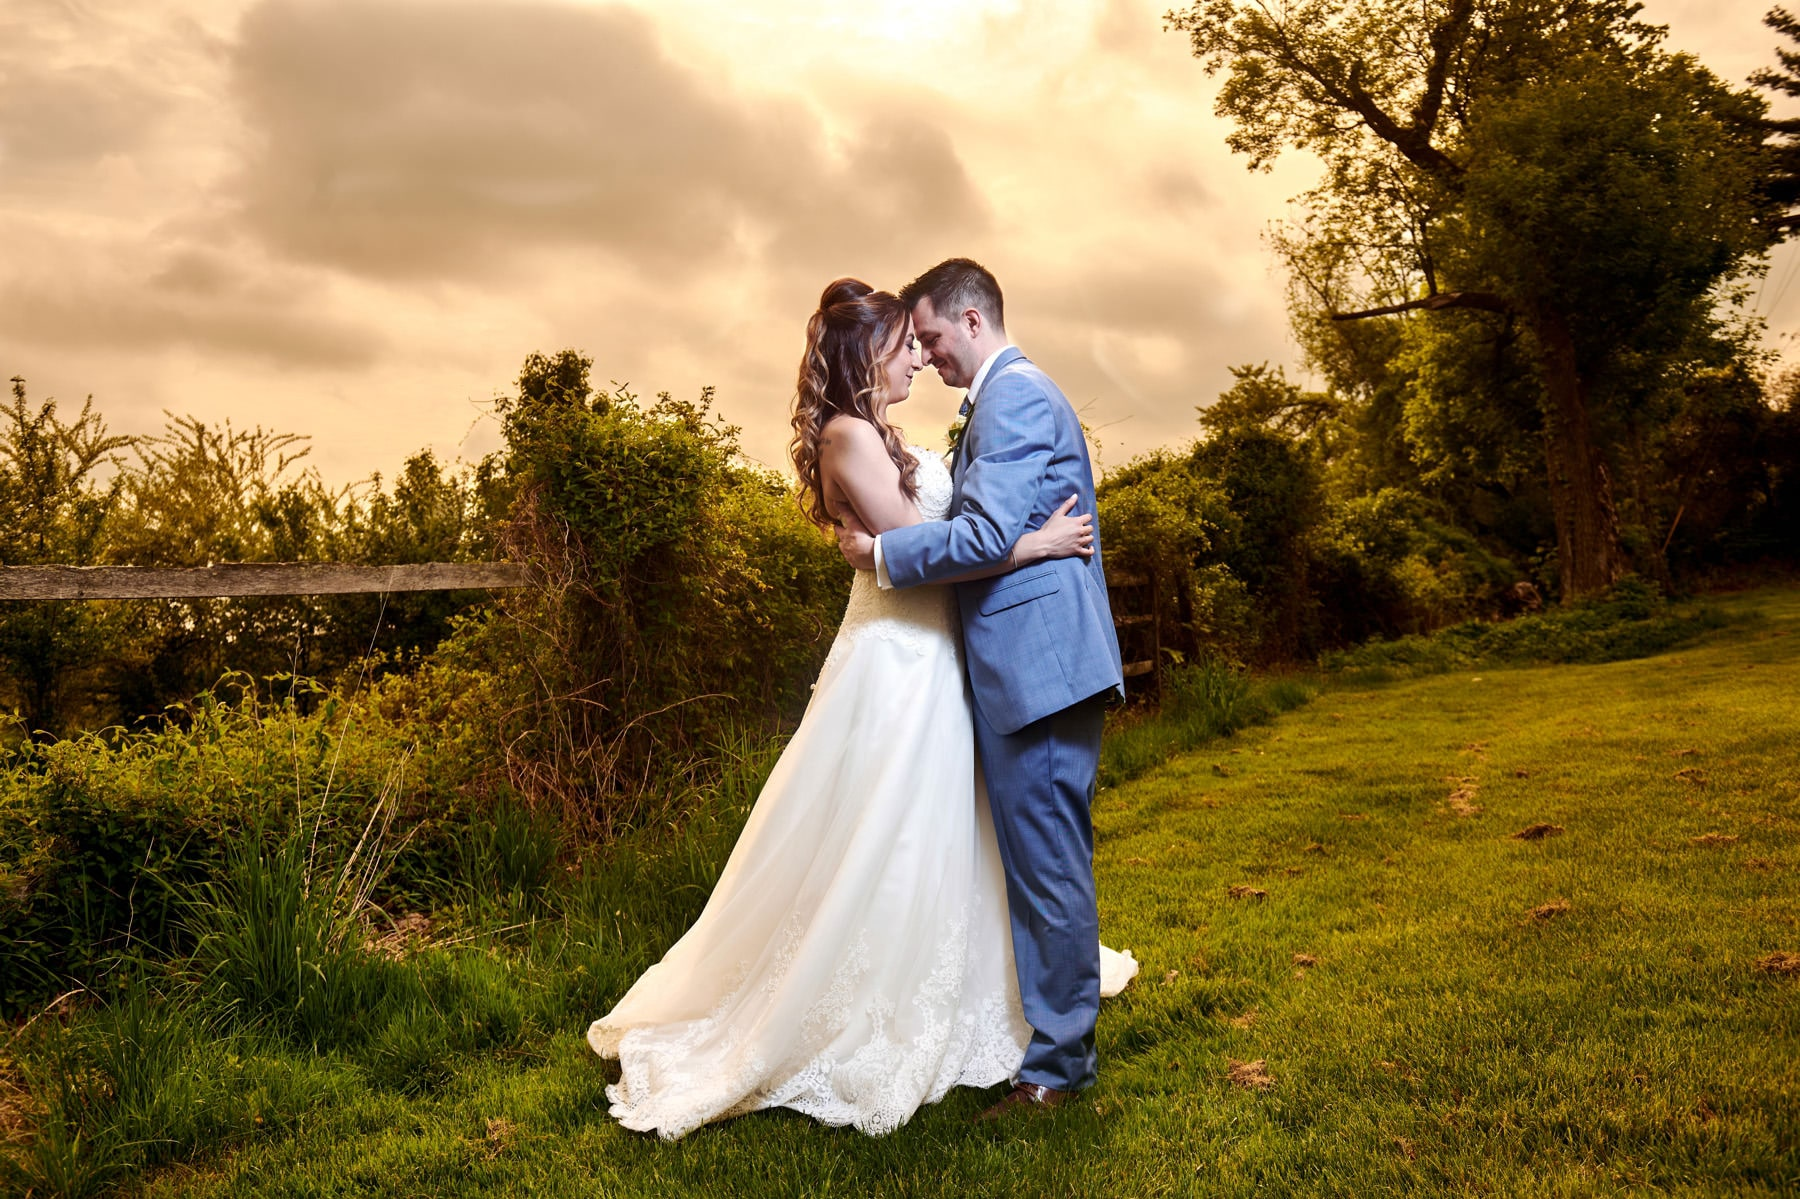 romantic wedding photo at basking ridge country club